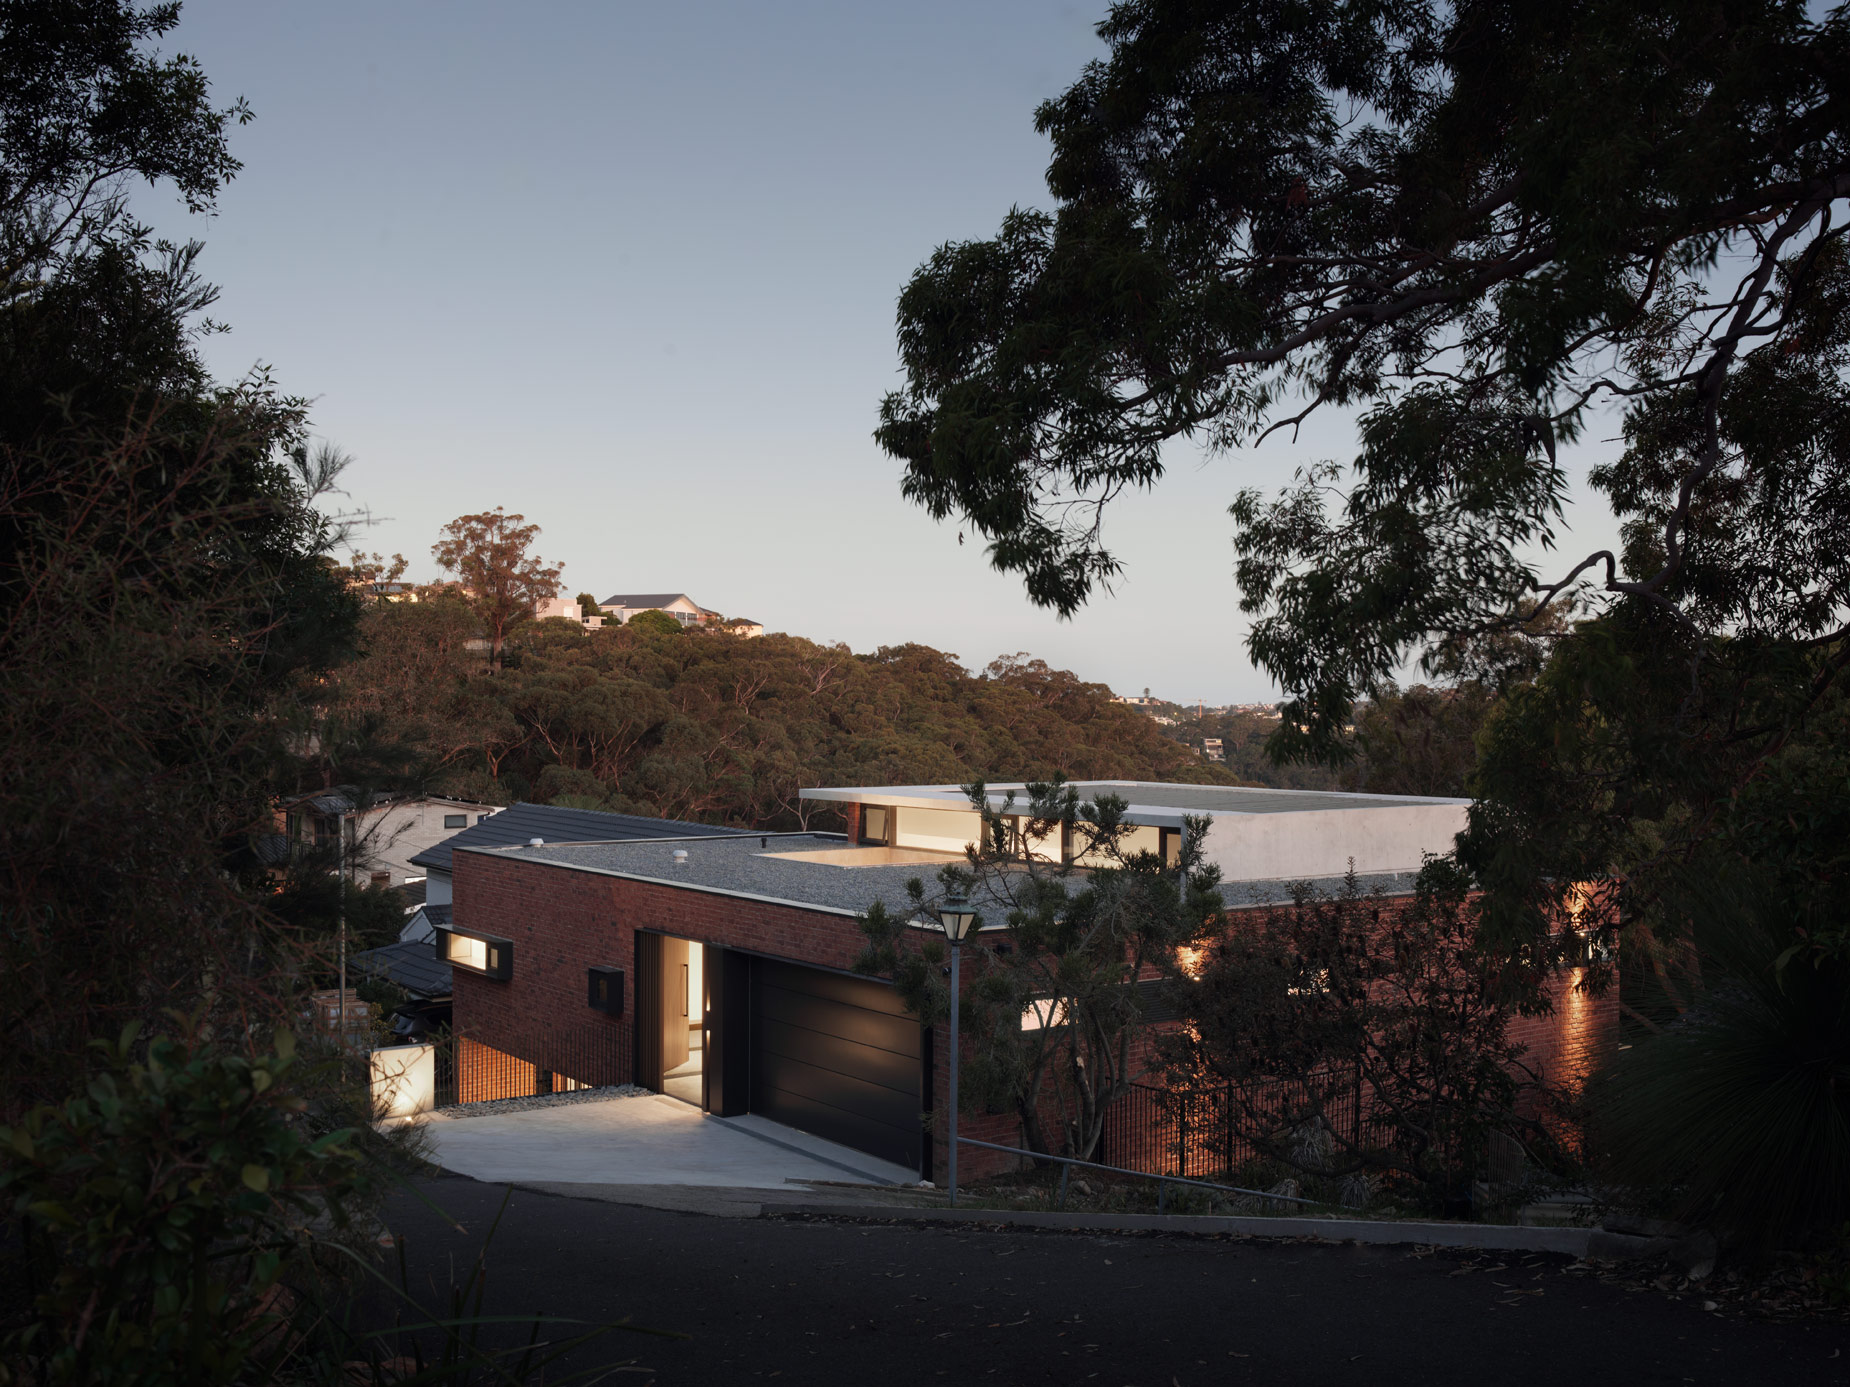 luke-butterly-2020-Cove-Cove-House-by-Dieppe-Design-Architecture-Sydney-NSW-29